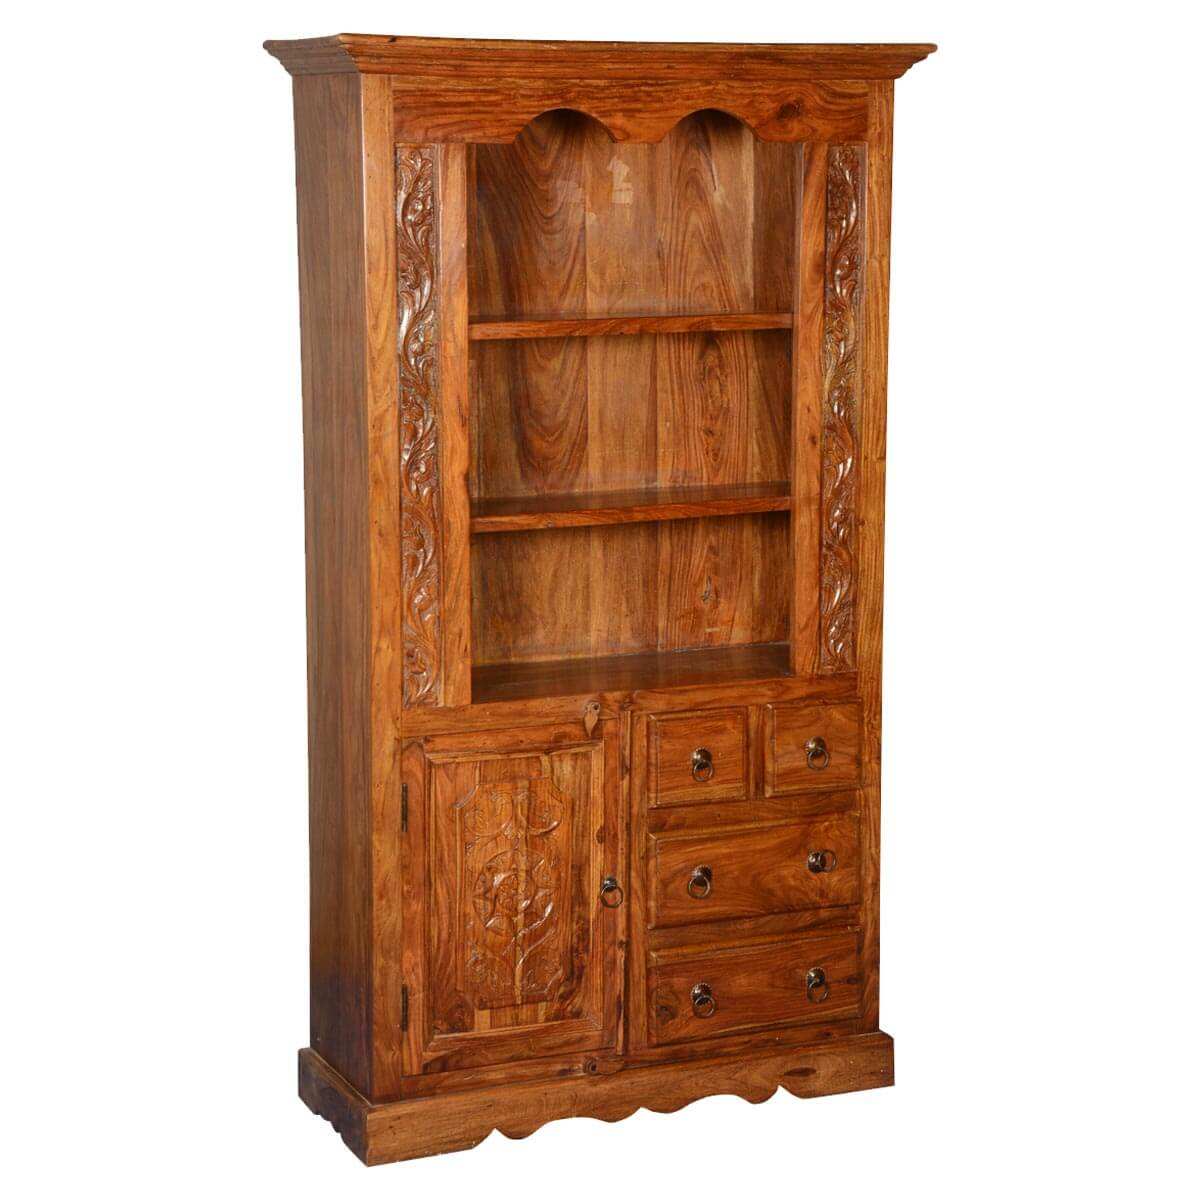 French Provincial Solid Wood Breakfront Open Display Cabinet